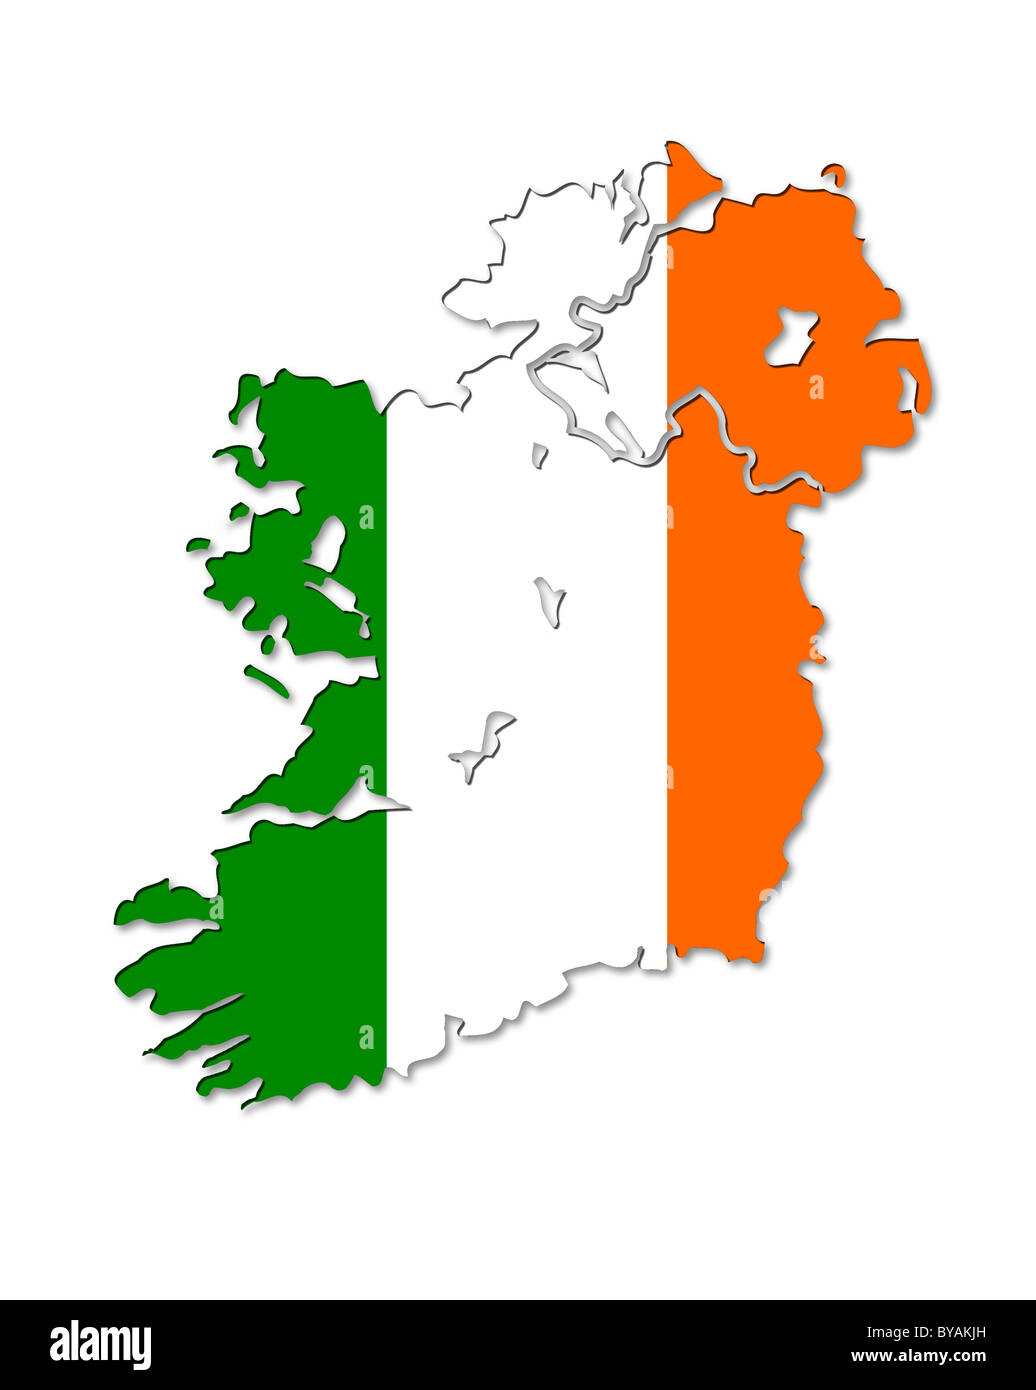 Illustrative map of Ireland with it's flag over it. - Stock Image